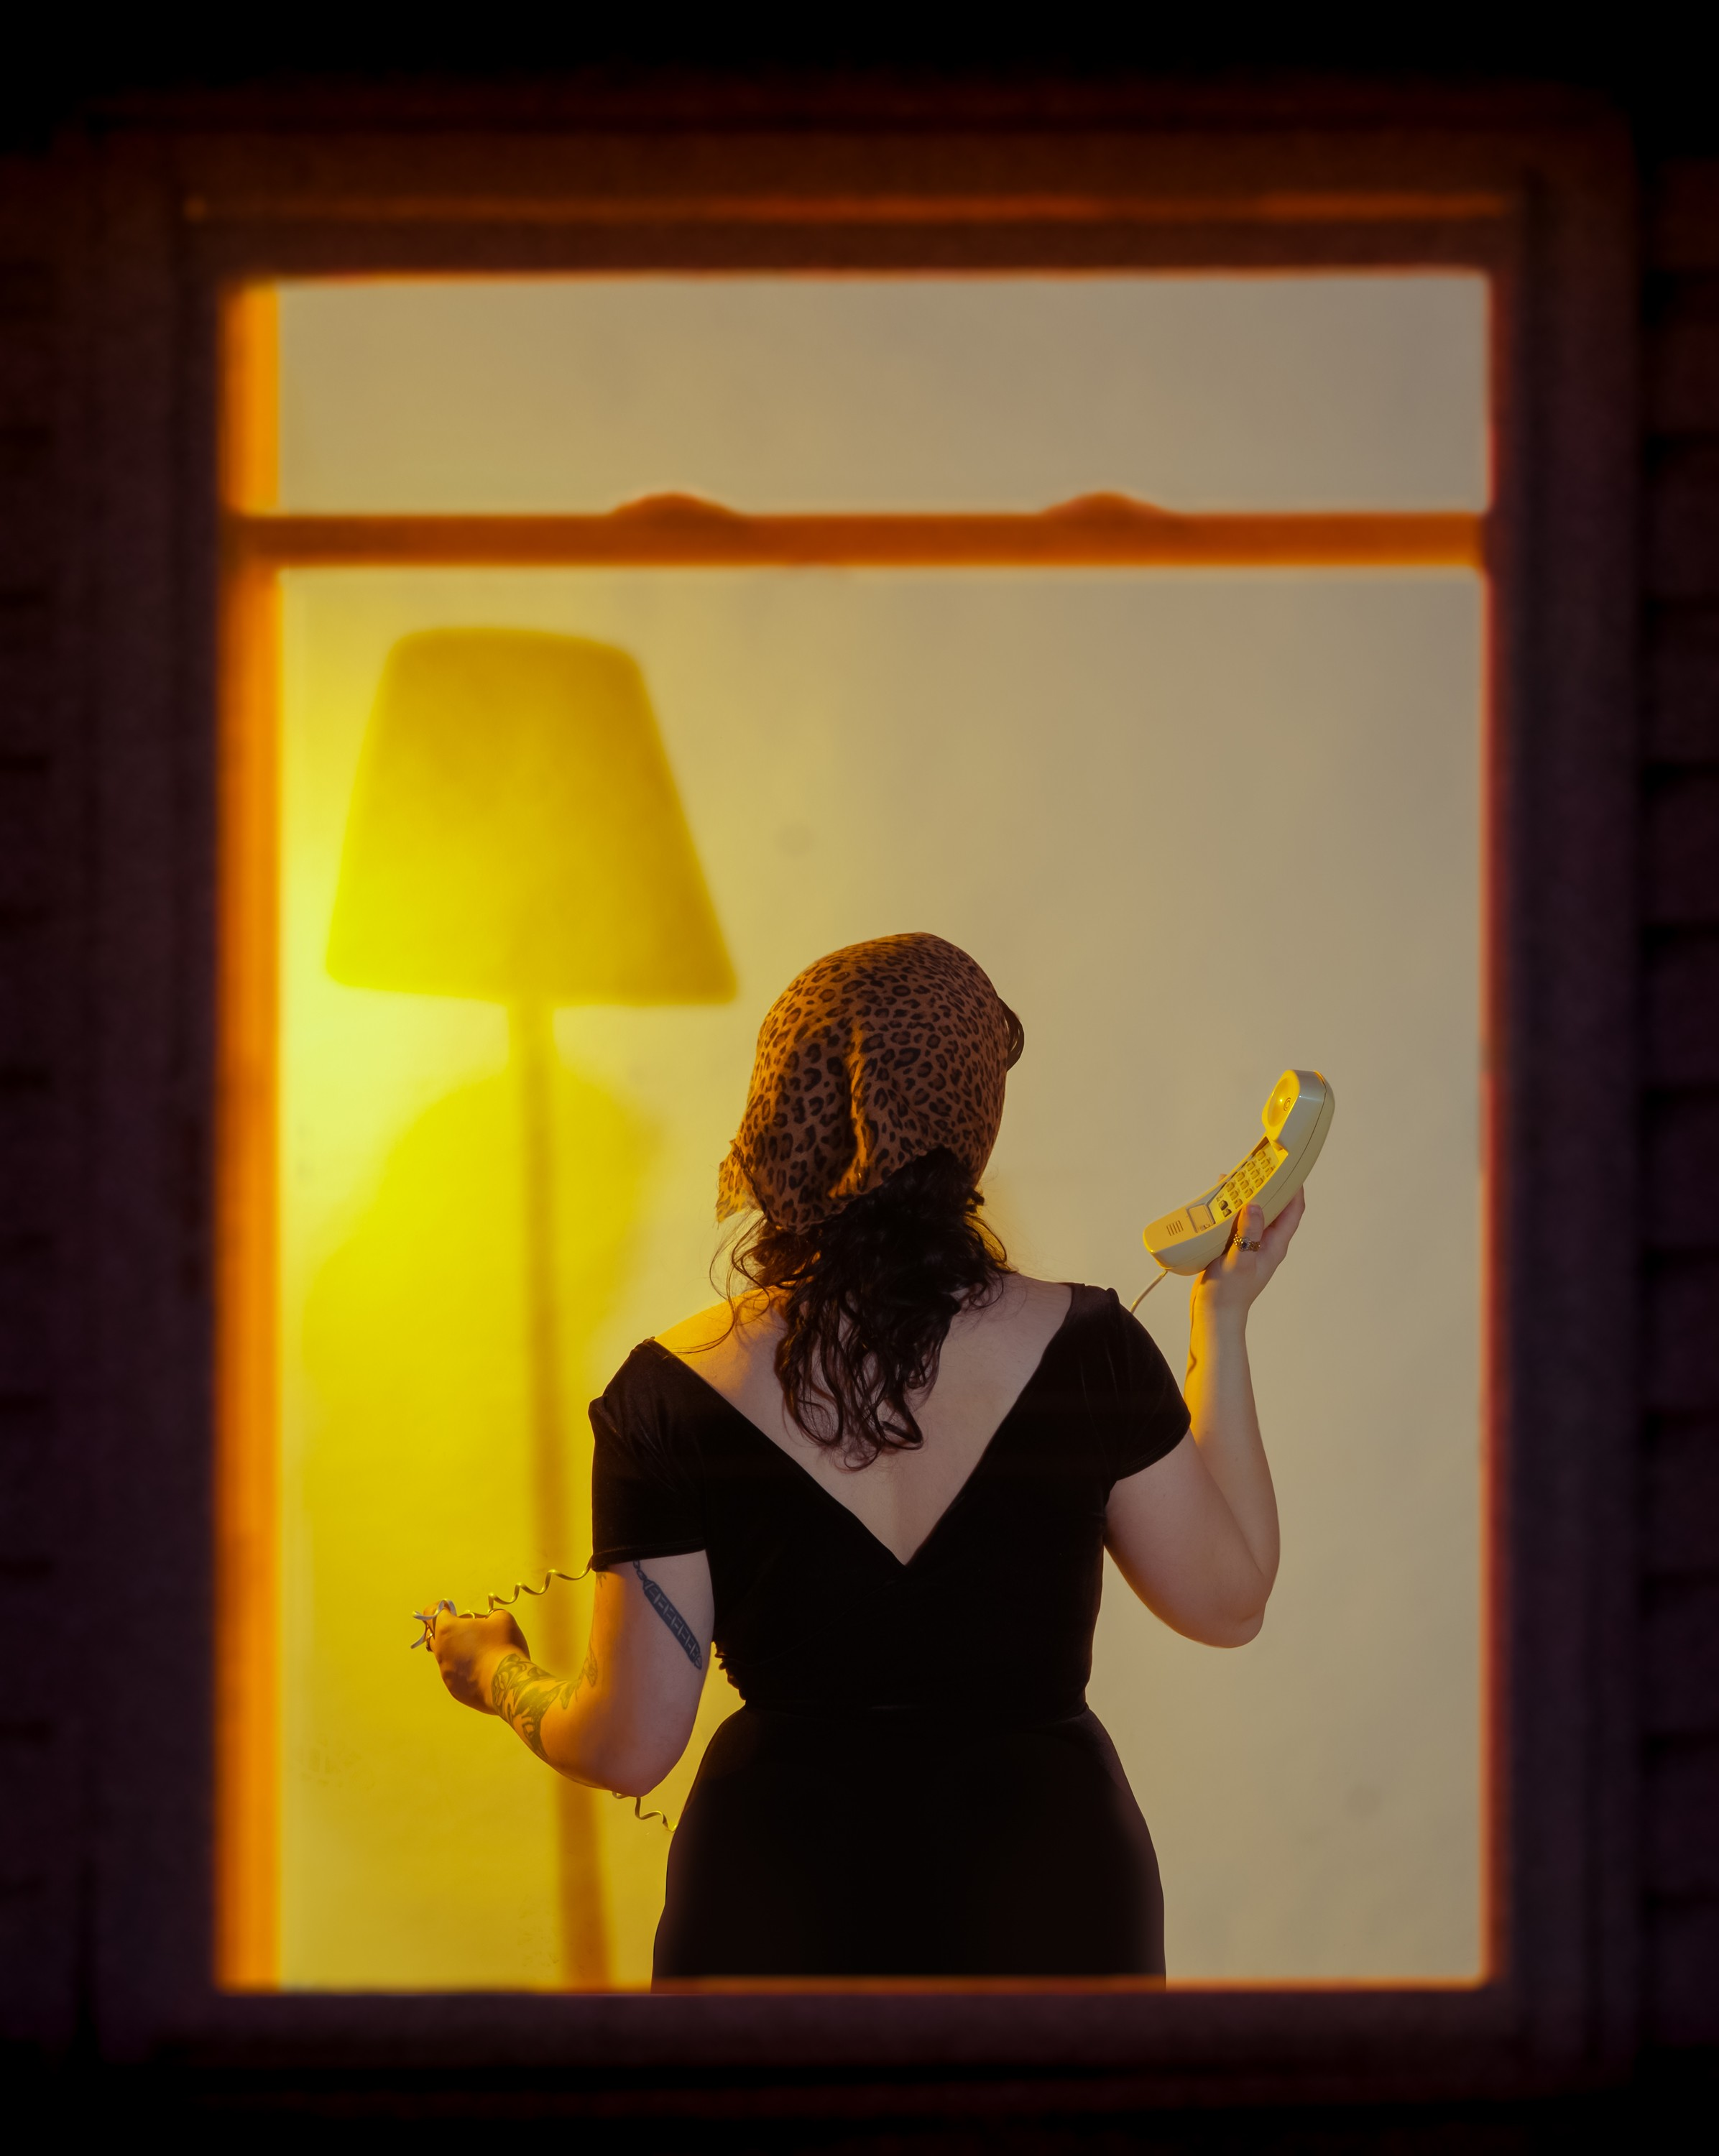 This is a portrait oriented digital photograph. The figure is seen from behind, semi-silhouetted against a warm interior – the viewer is looking through a window from the outside.